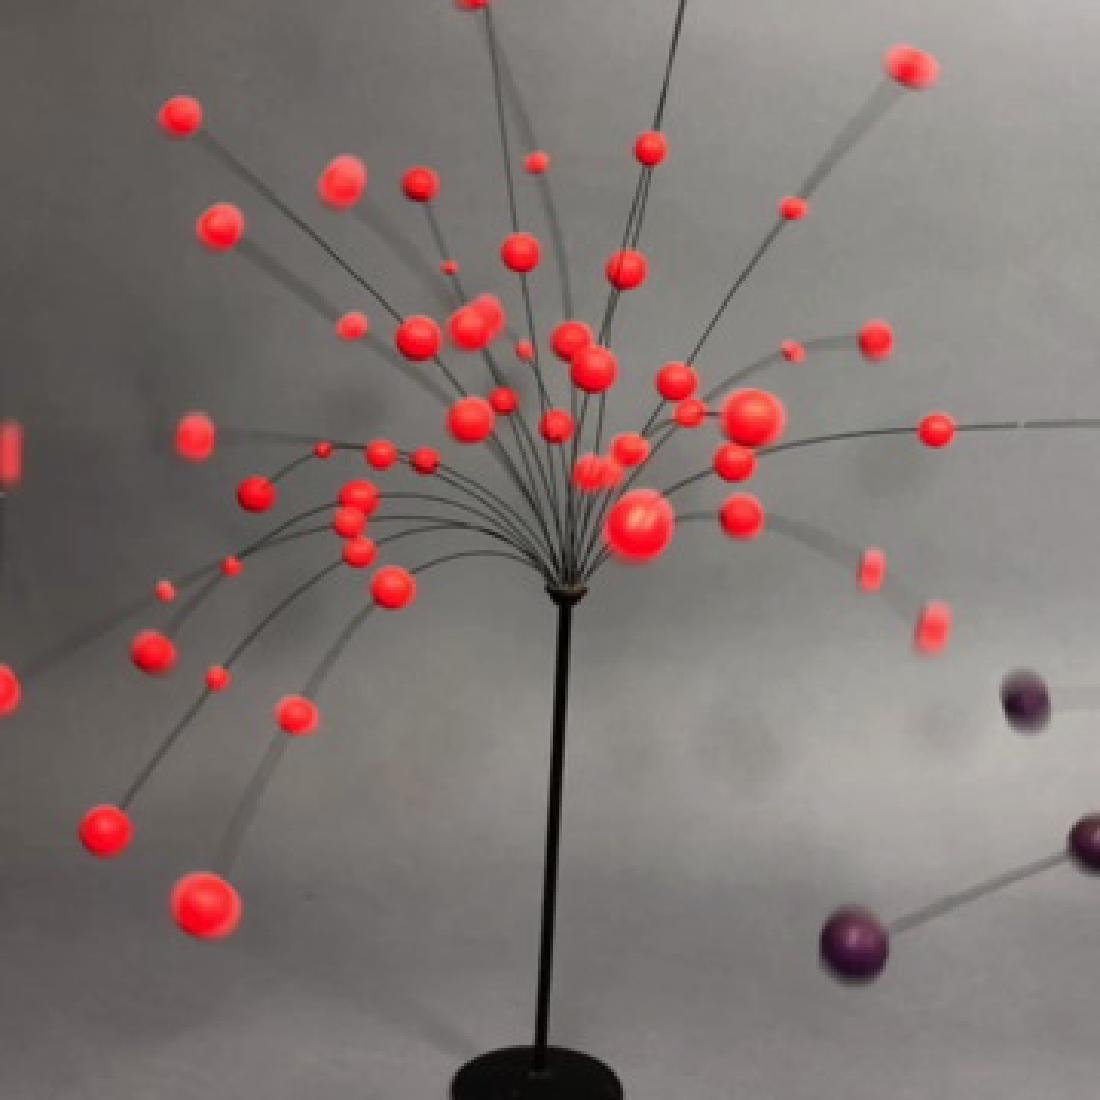 3 LAURIDS LONBORG Style Kinetic Ball Sculptures. - 6